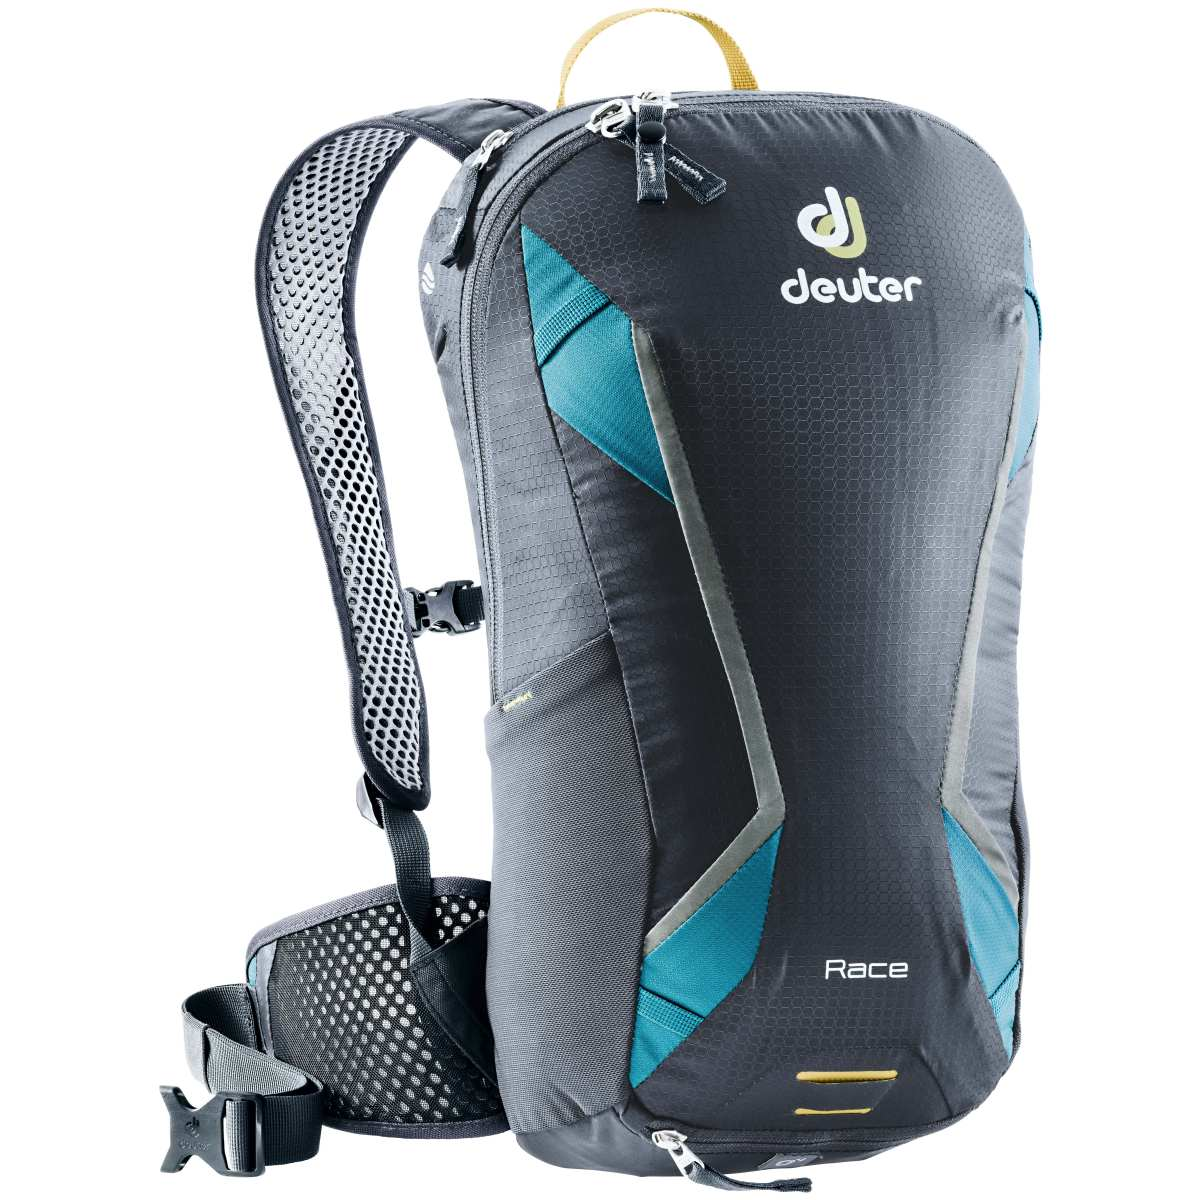 c234c625ede Deuter Race - Rugzakken - Accessoires - Outdoor - Intersport van den ...